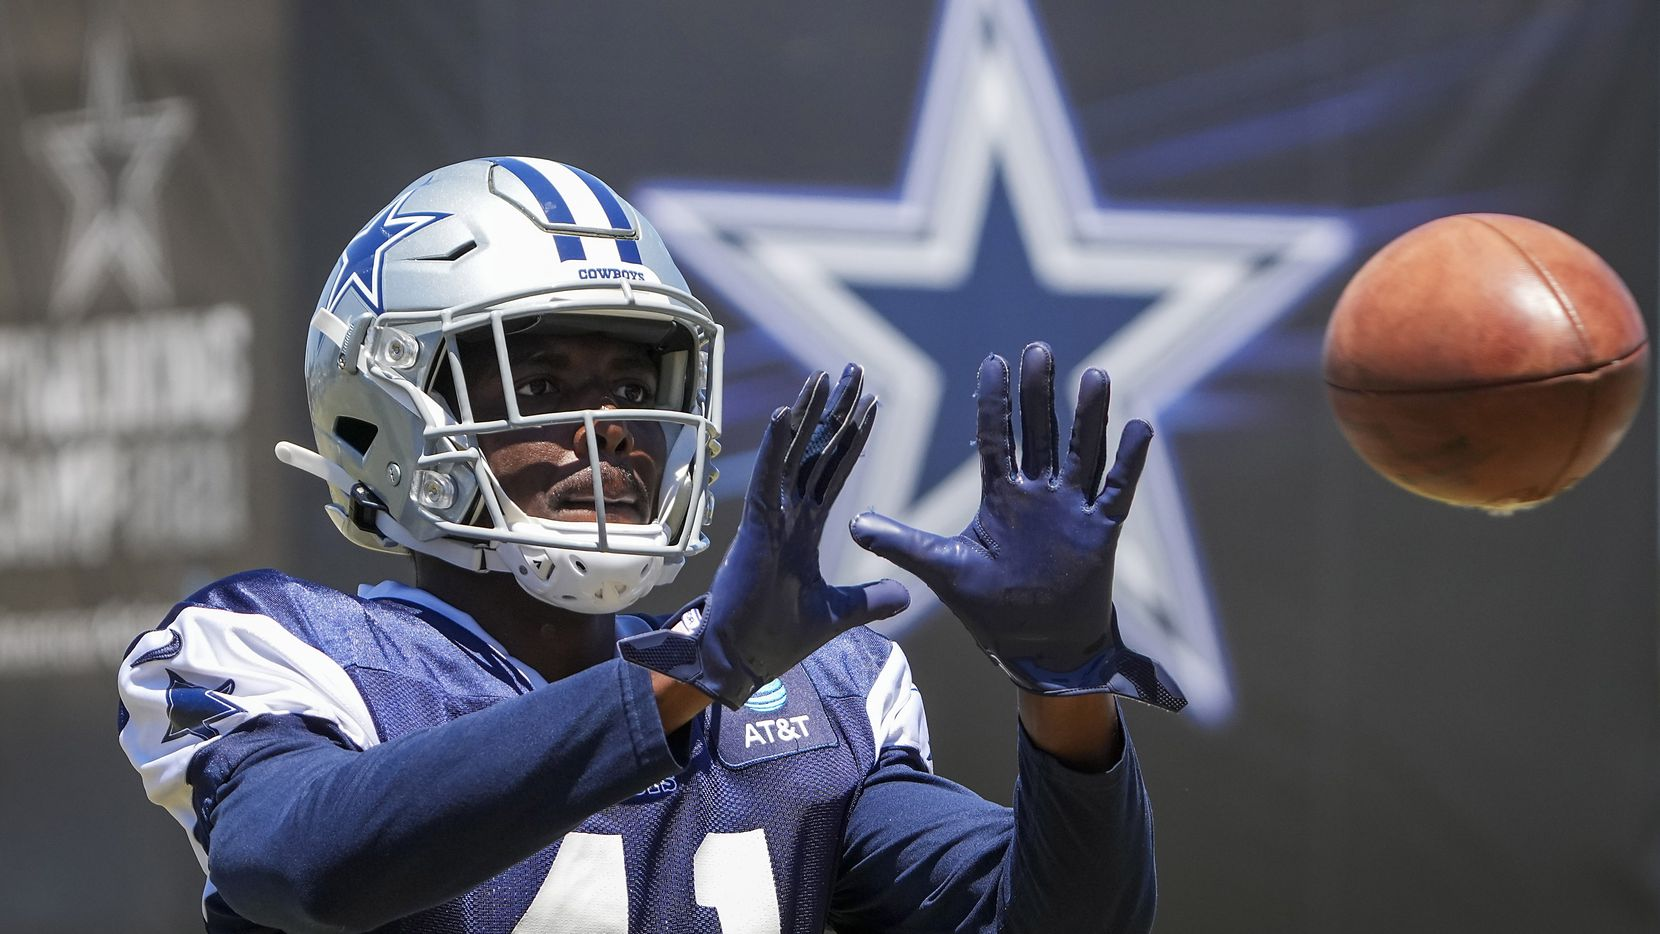 Dallas Cowboys cornerback Reggie Robinson II catches a ball during a practice at training camp on Sunday, Aug. 1, 2021, in Oxnard, Calif.